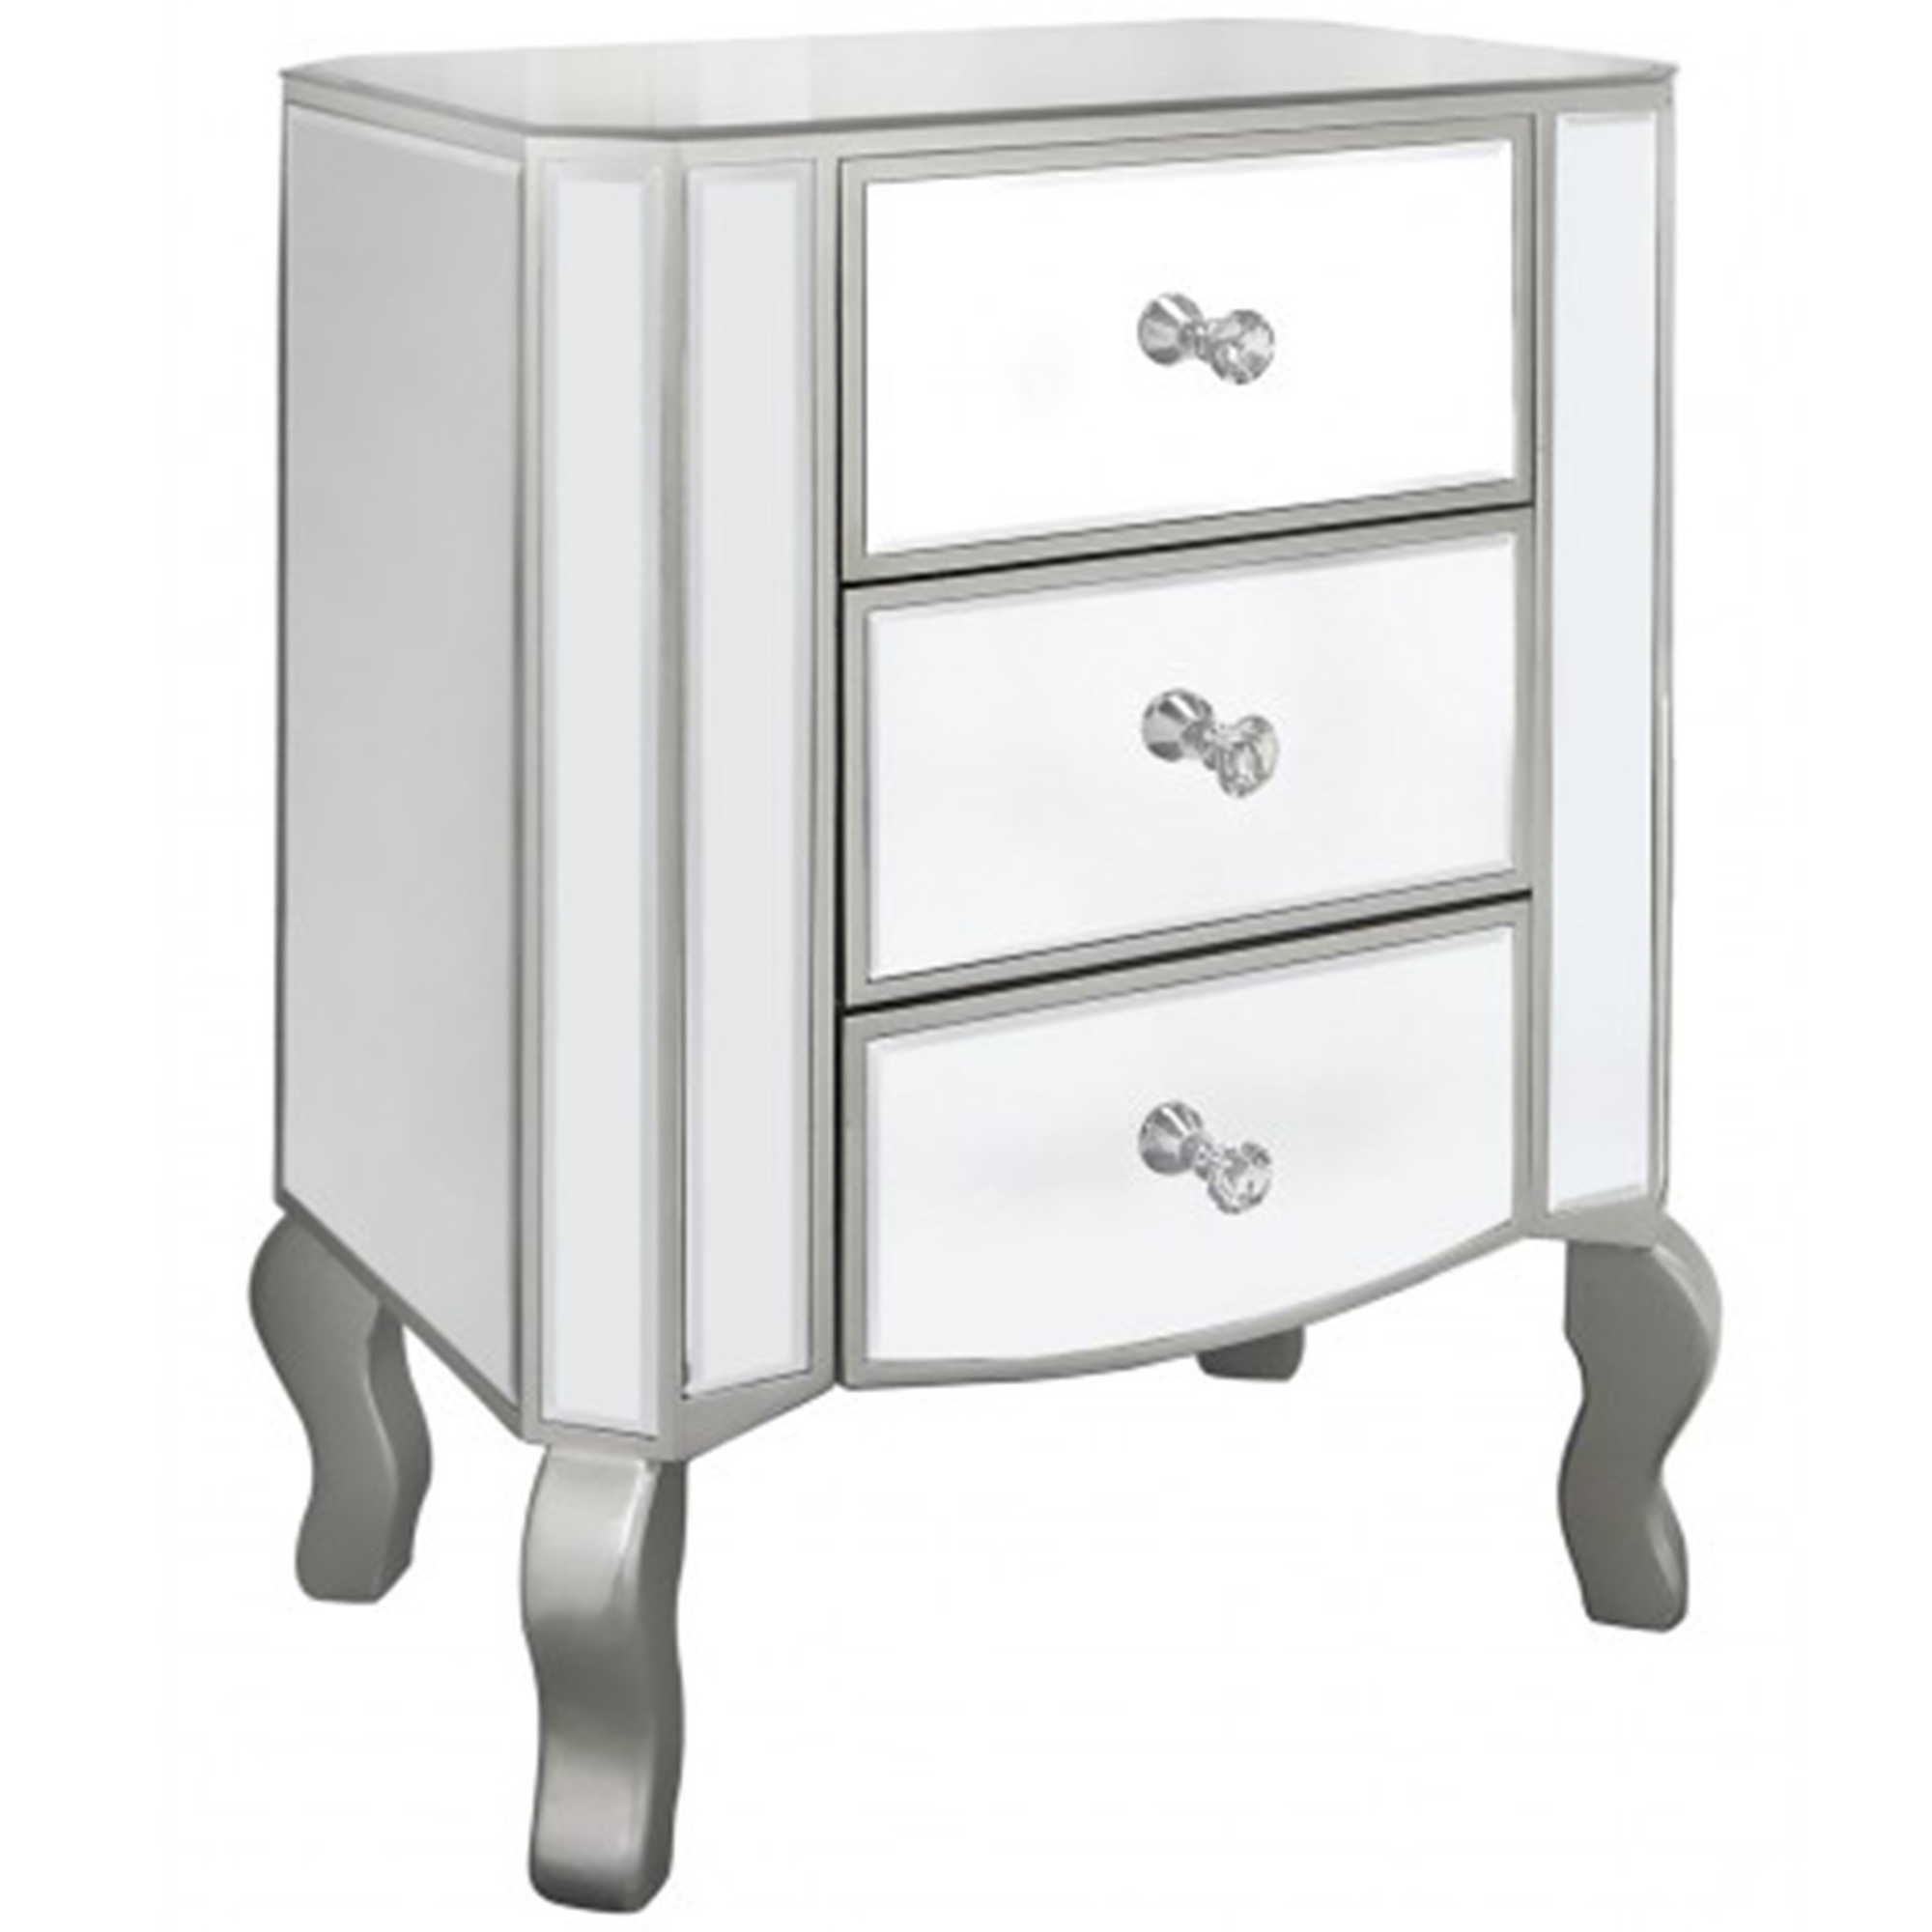 Palermo mirrored bedside table venetian mirrored bedside for Furniture 365 direct